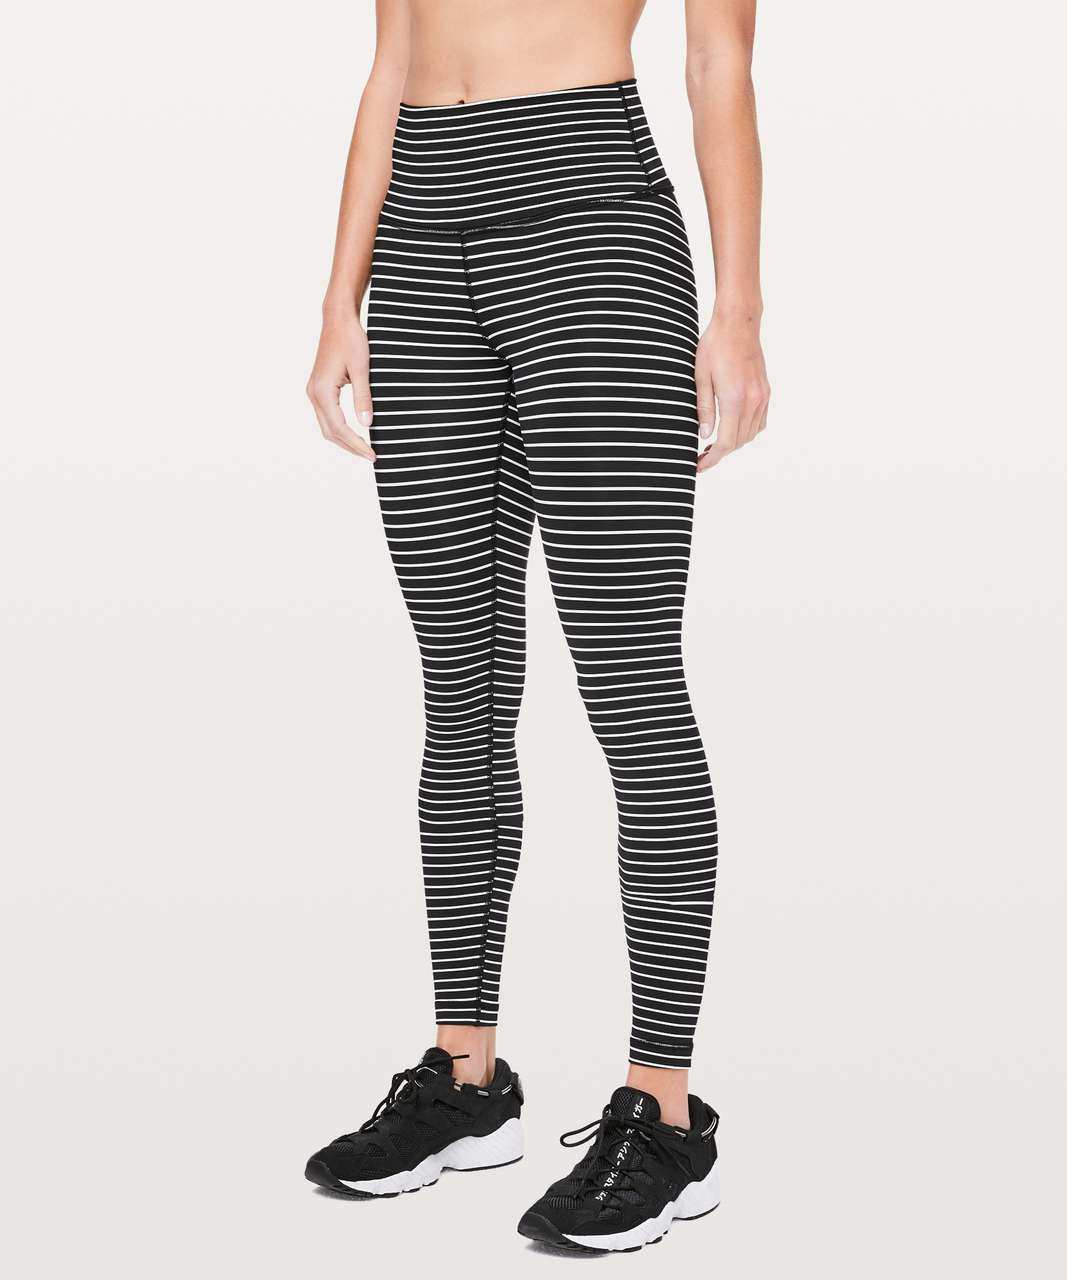 "Lululemon Wunder Under High-Rise Tight *Luxtreme 28"" - Parallel Stripe Black White"